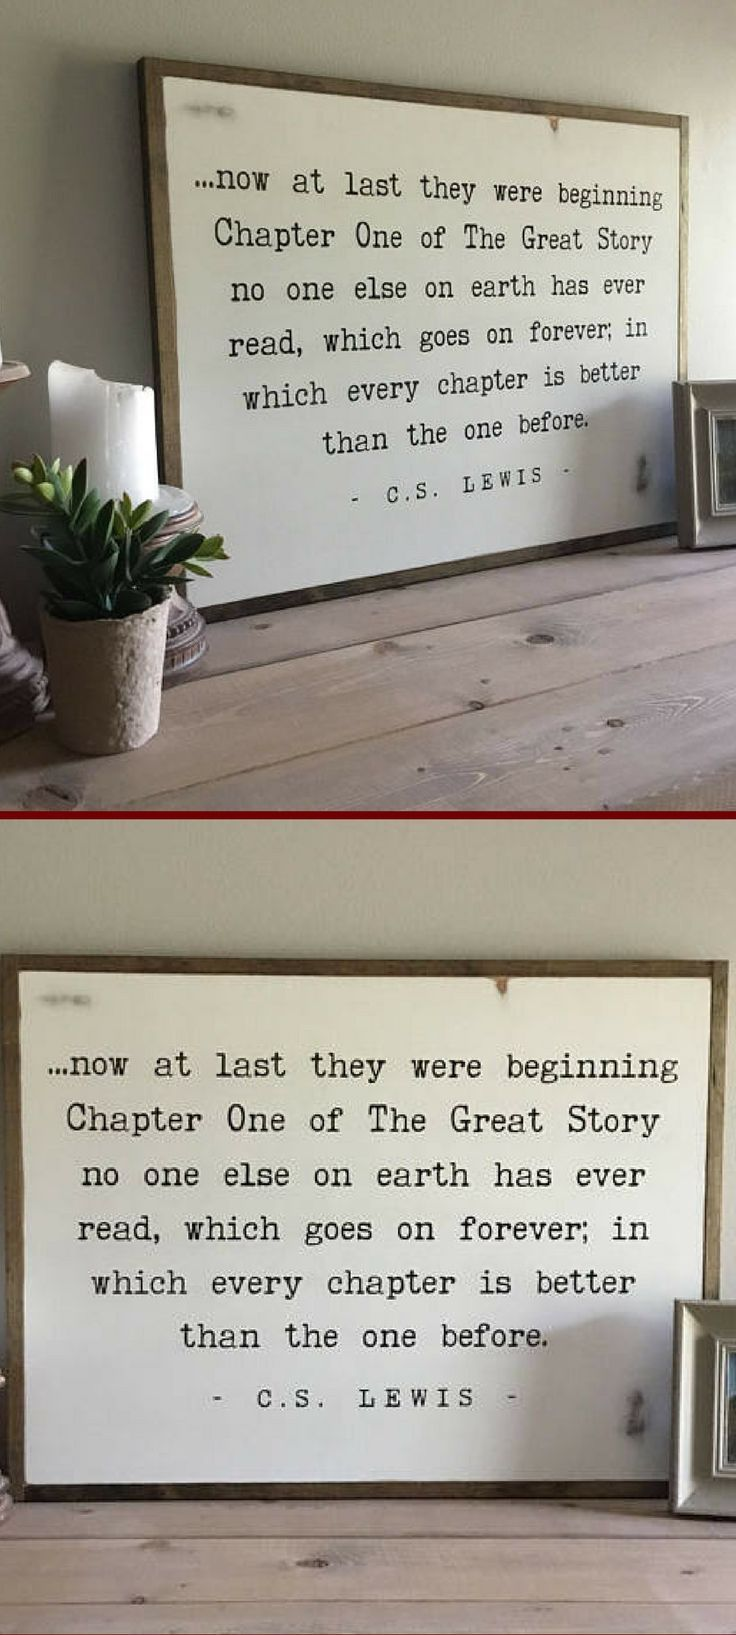 Wedding decorations shabby chic october 2018 Absolutely love this distressed wall decor of The Great Story quote